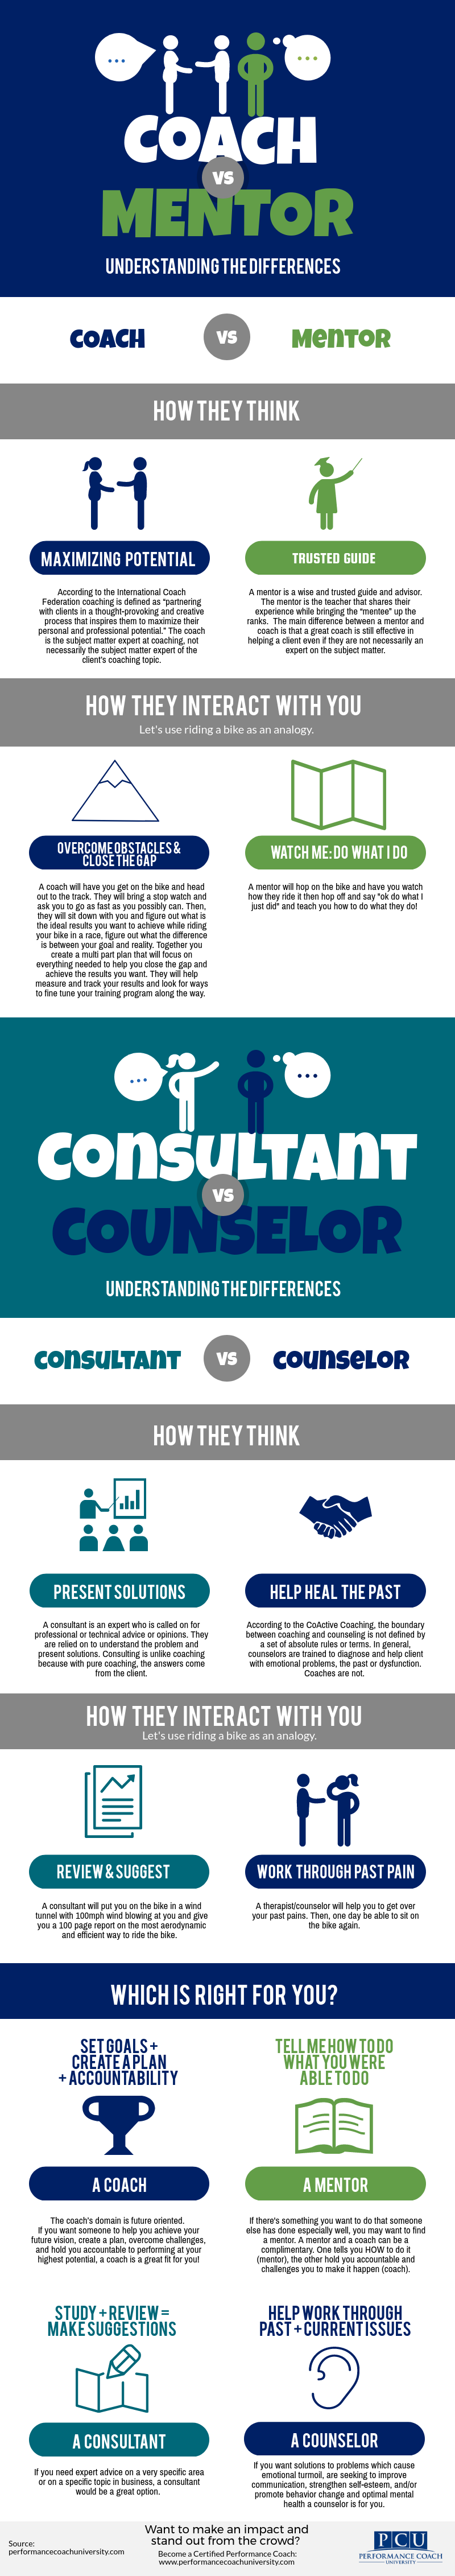 What's the difference? Coach vs Mentor, Consultant vs